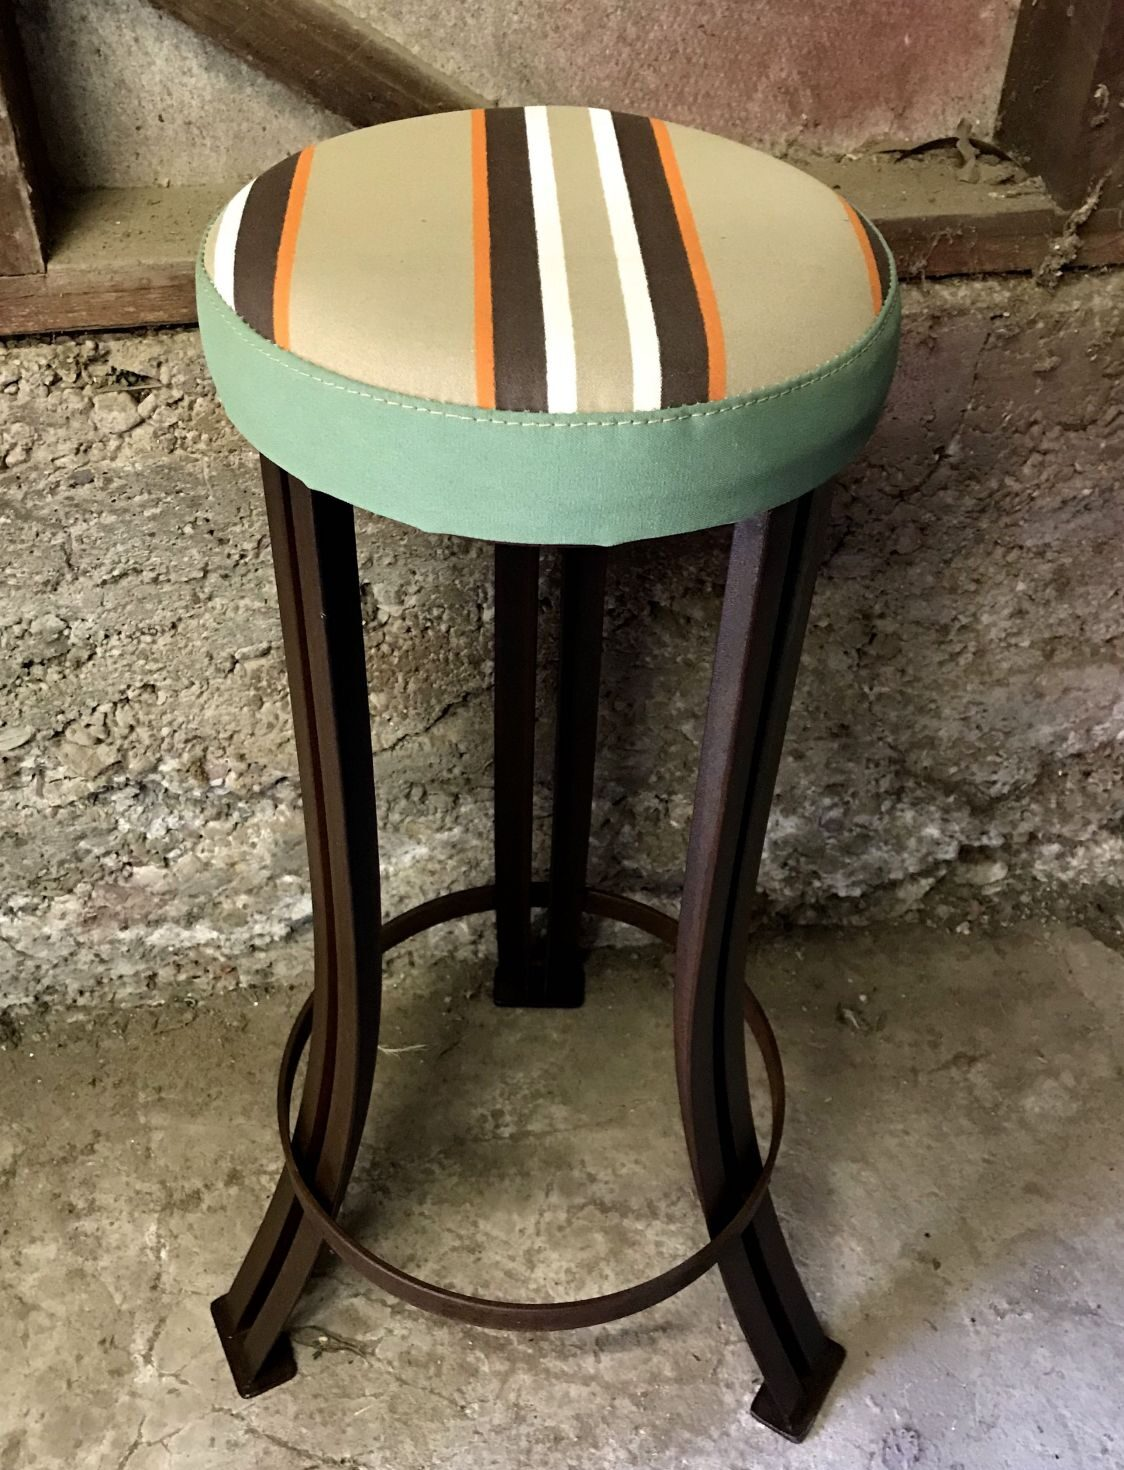 Steel bar stool – striped canvas top